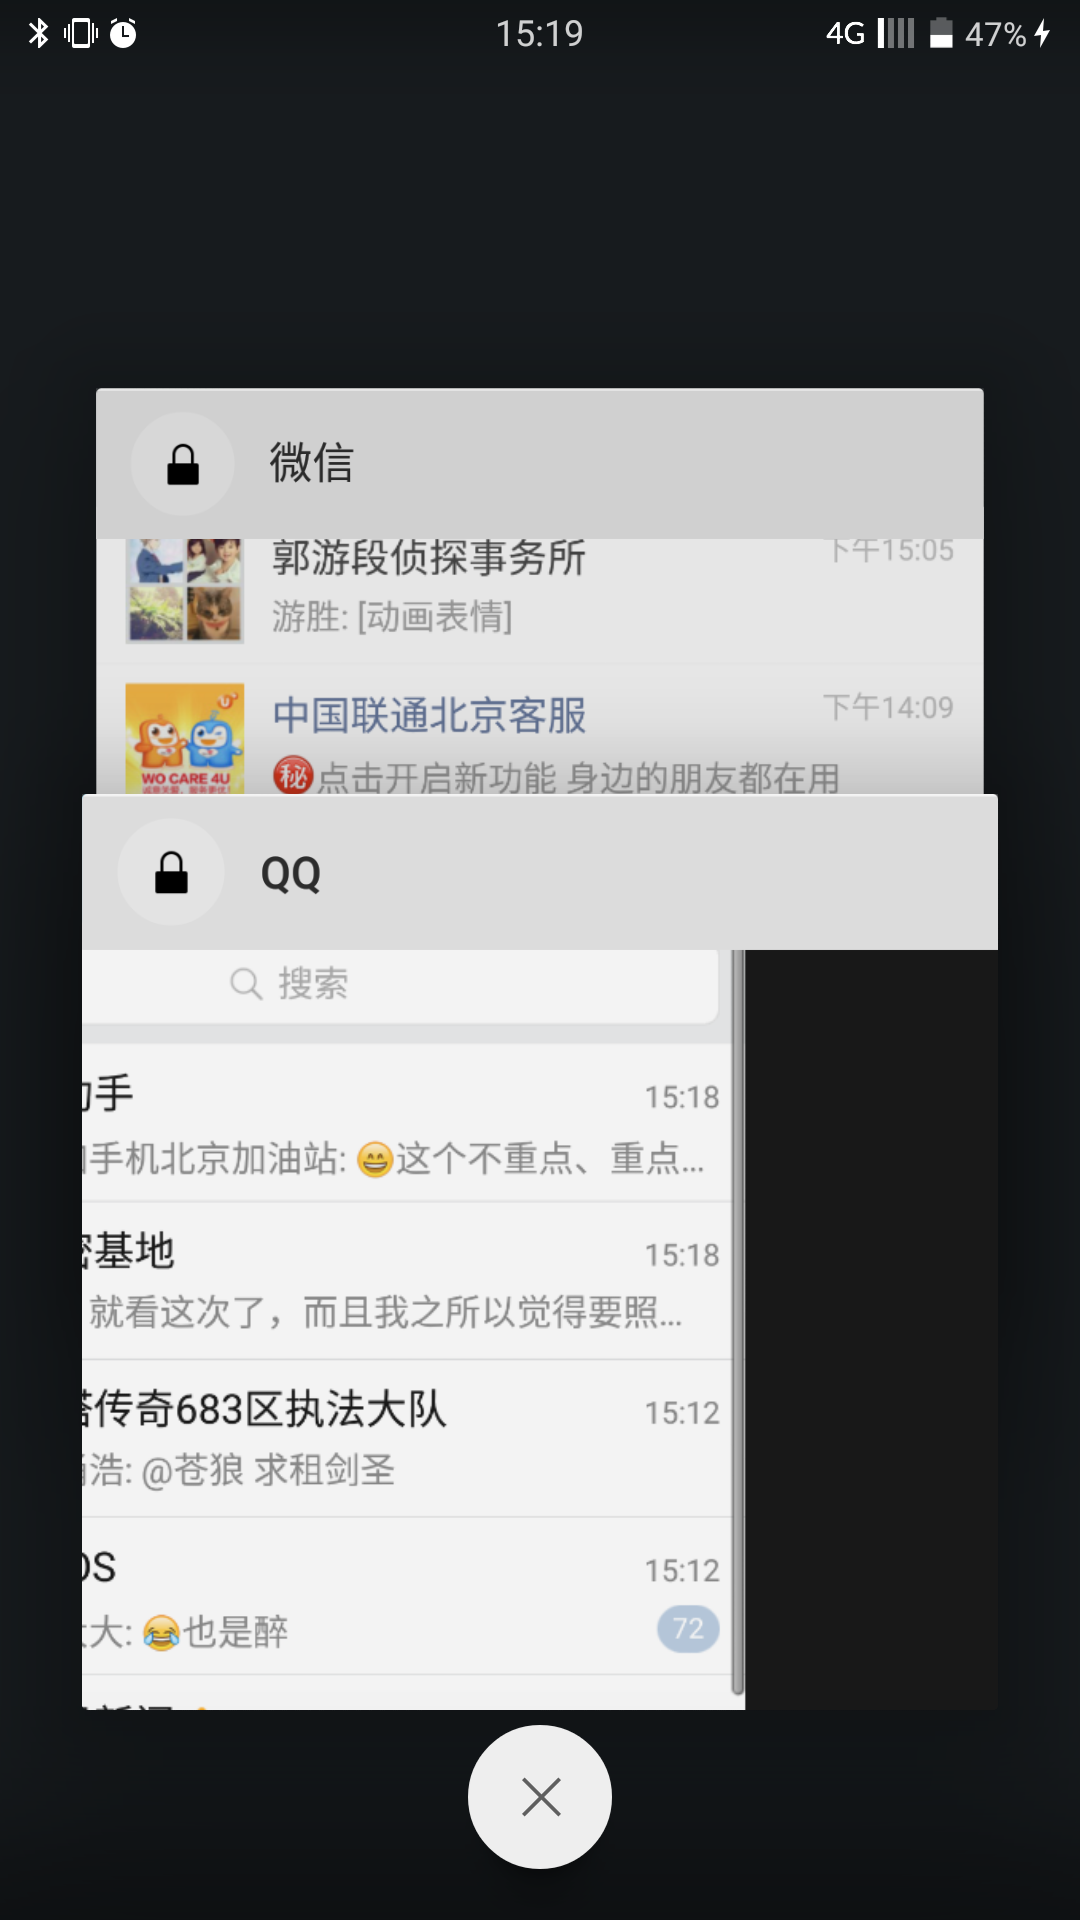 Screenshot_2015-07-16-15-19-33.png